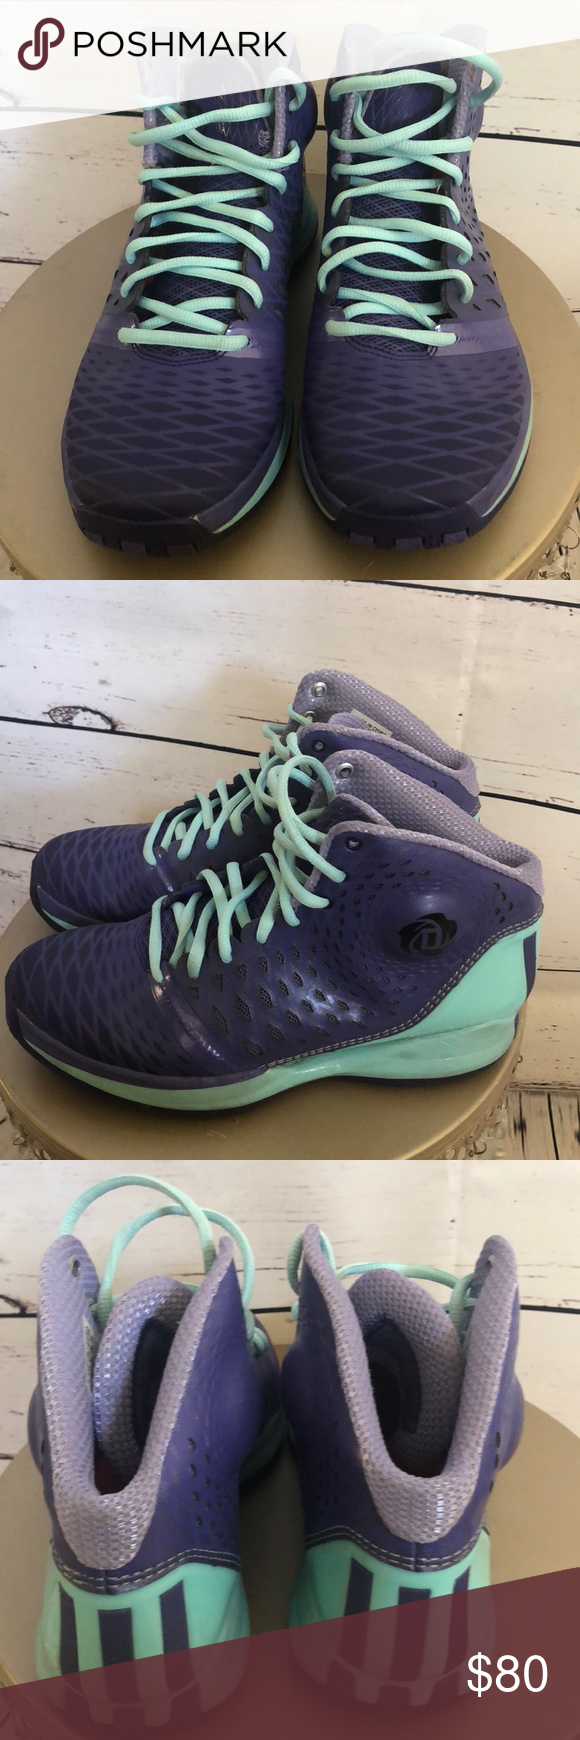 8808c8fb523 Purple Derrick Rose 3.5 Adidas Murray Park Winter Awesome shoes ...